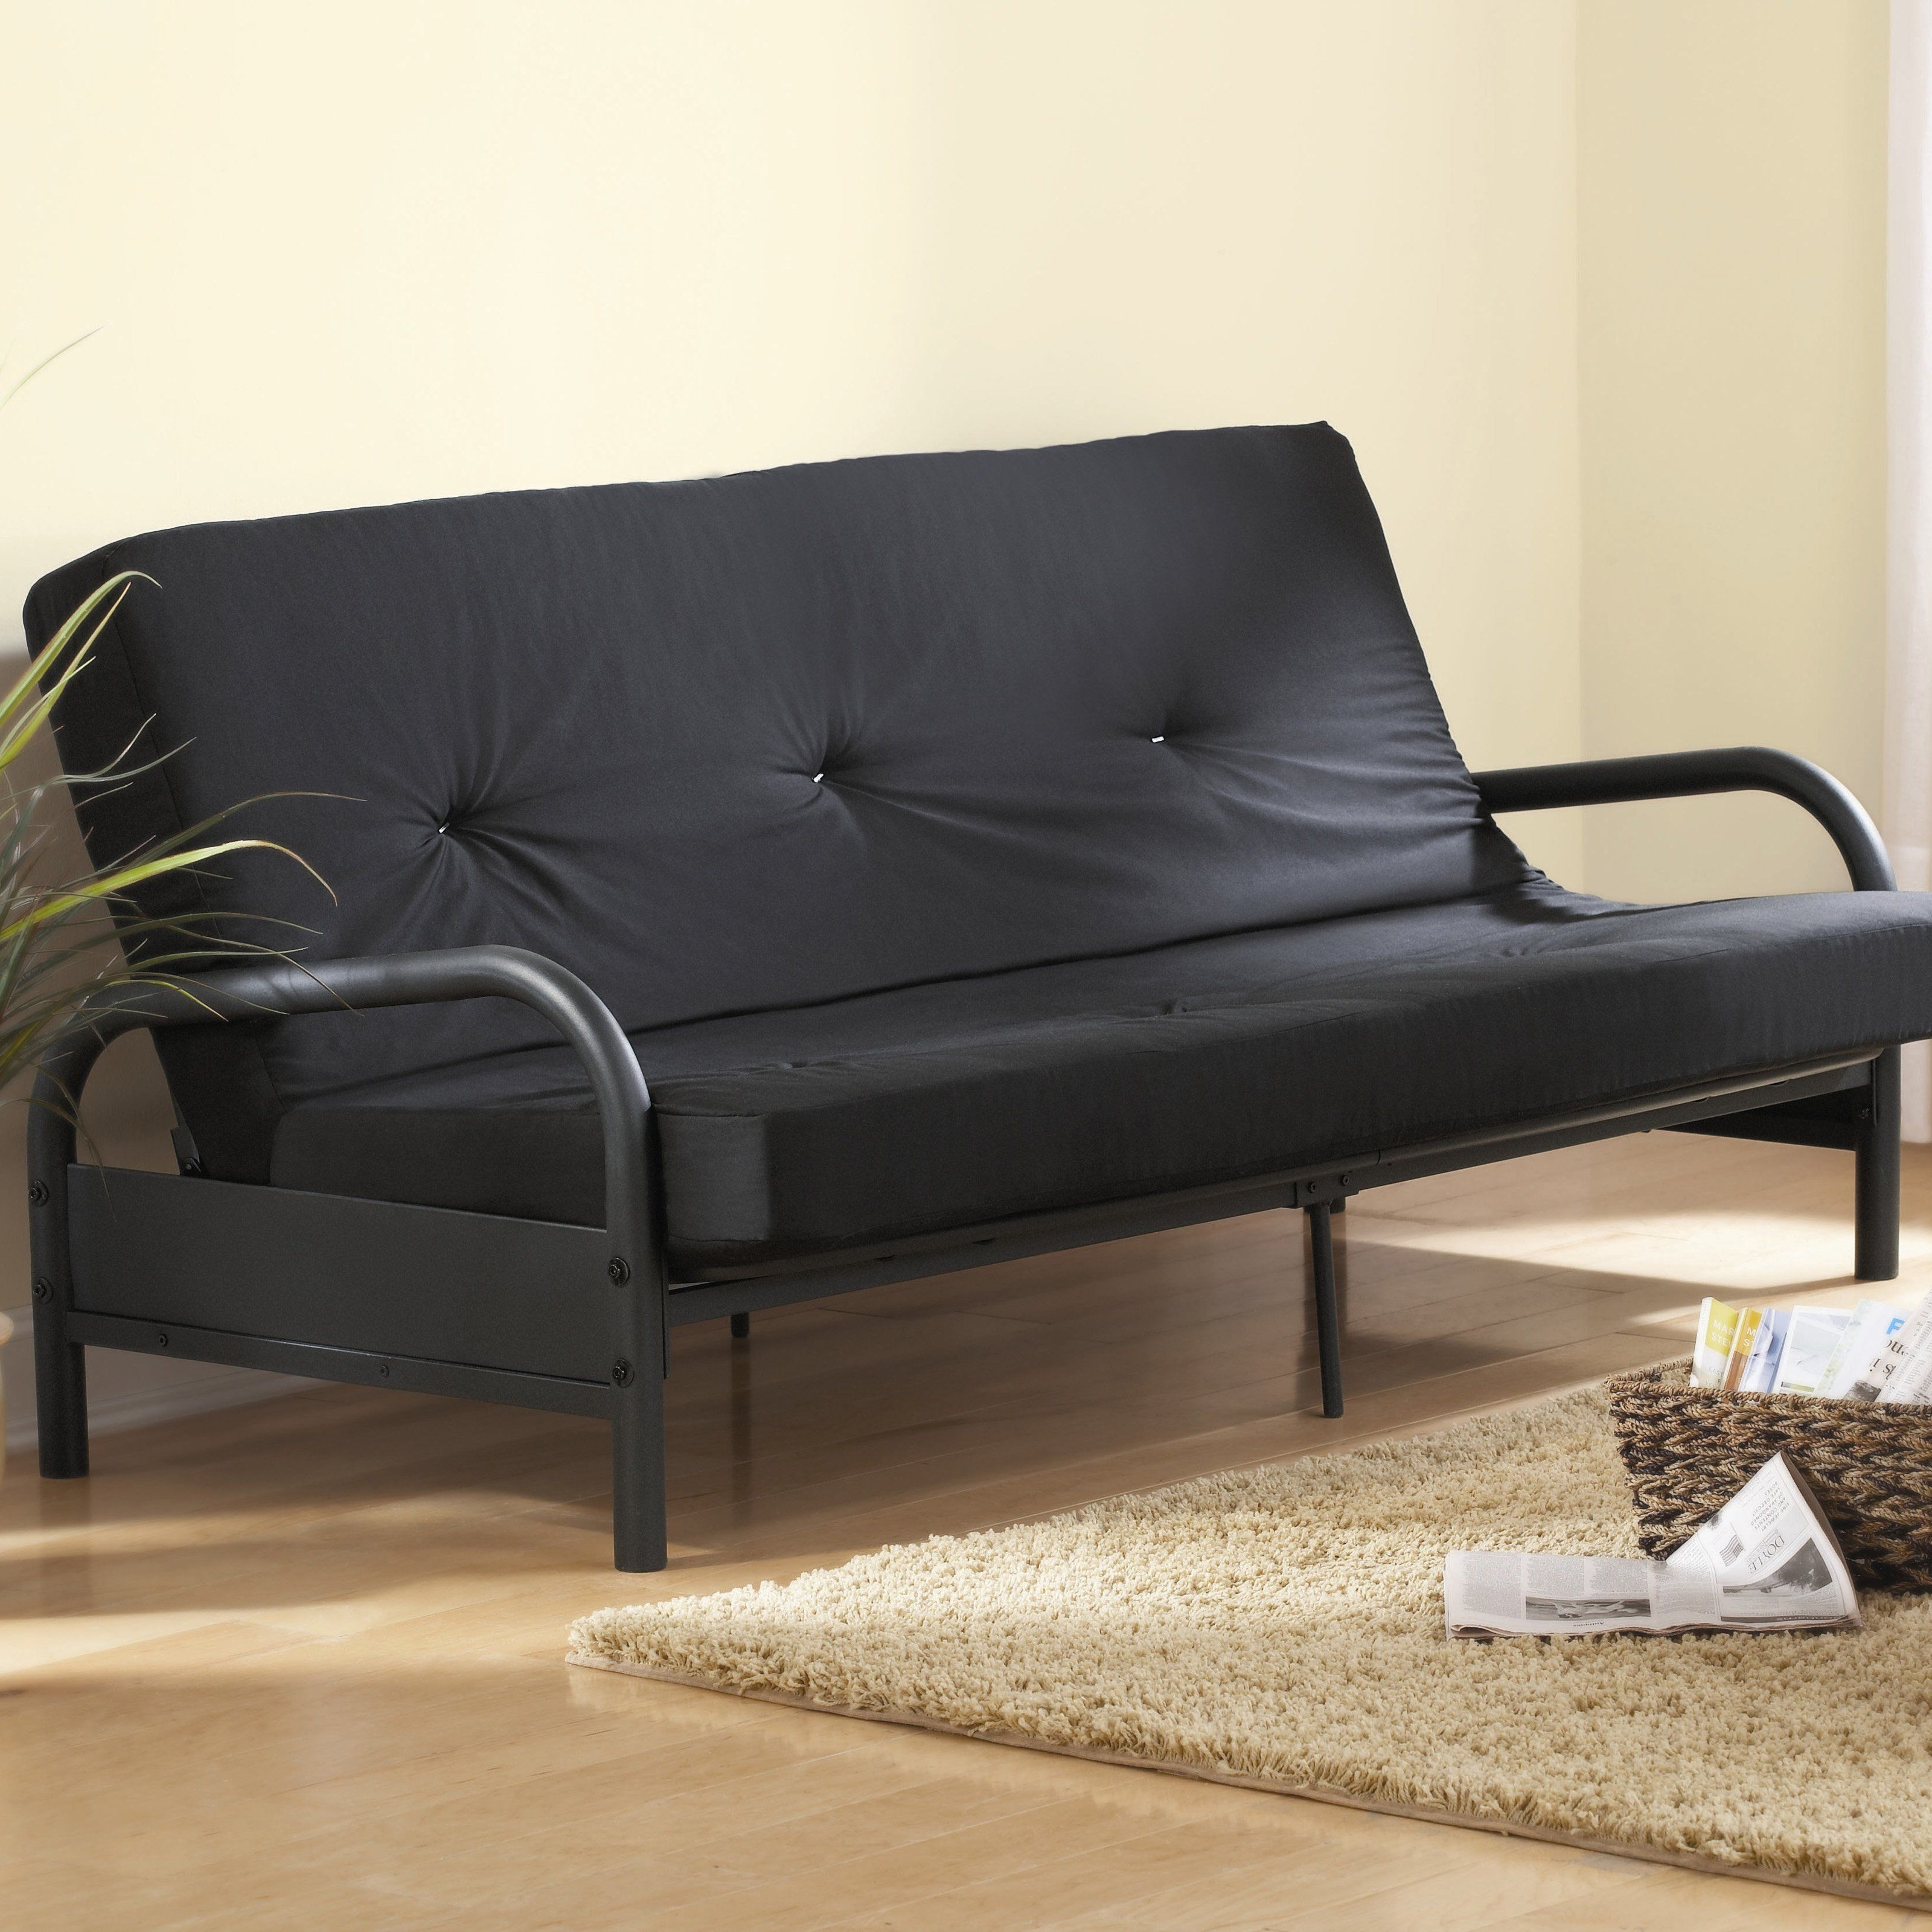 Awesome Bed Couch Walmart Luxury Bed Couch Walmart 11 For Living Room Sofa Ideas With Bed Couch Walmart Cheap Sofa Beds Contemporary Sofa Bed Foam Sofa Bed